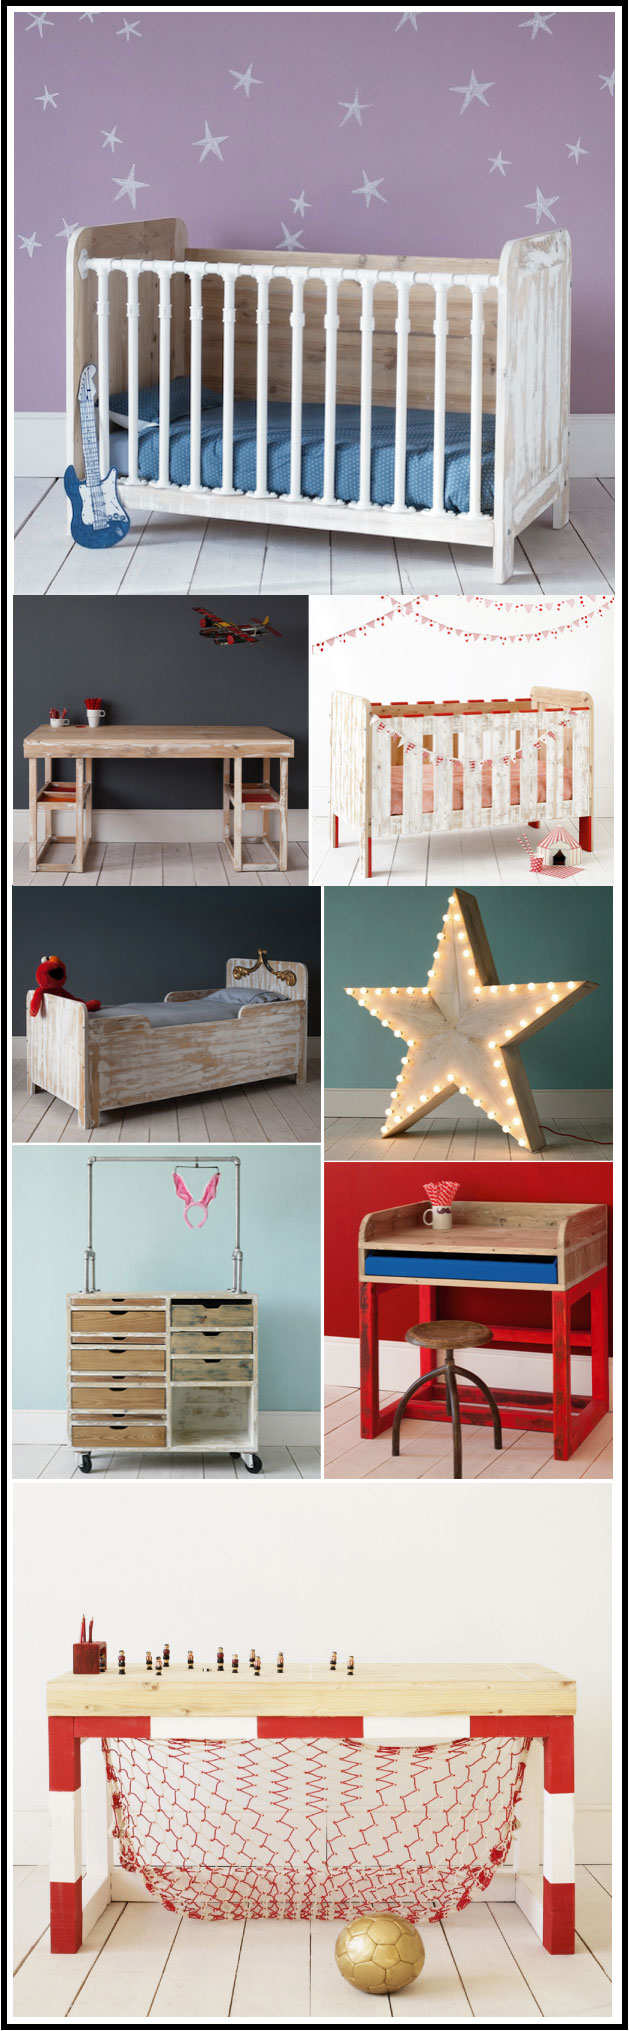 XO-in-my-room, mobilier design chambre enfant by-chiara-stella home